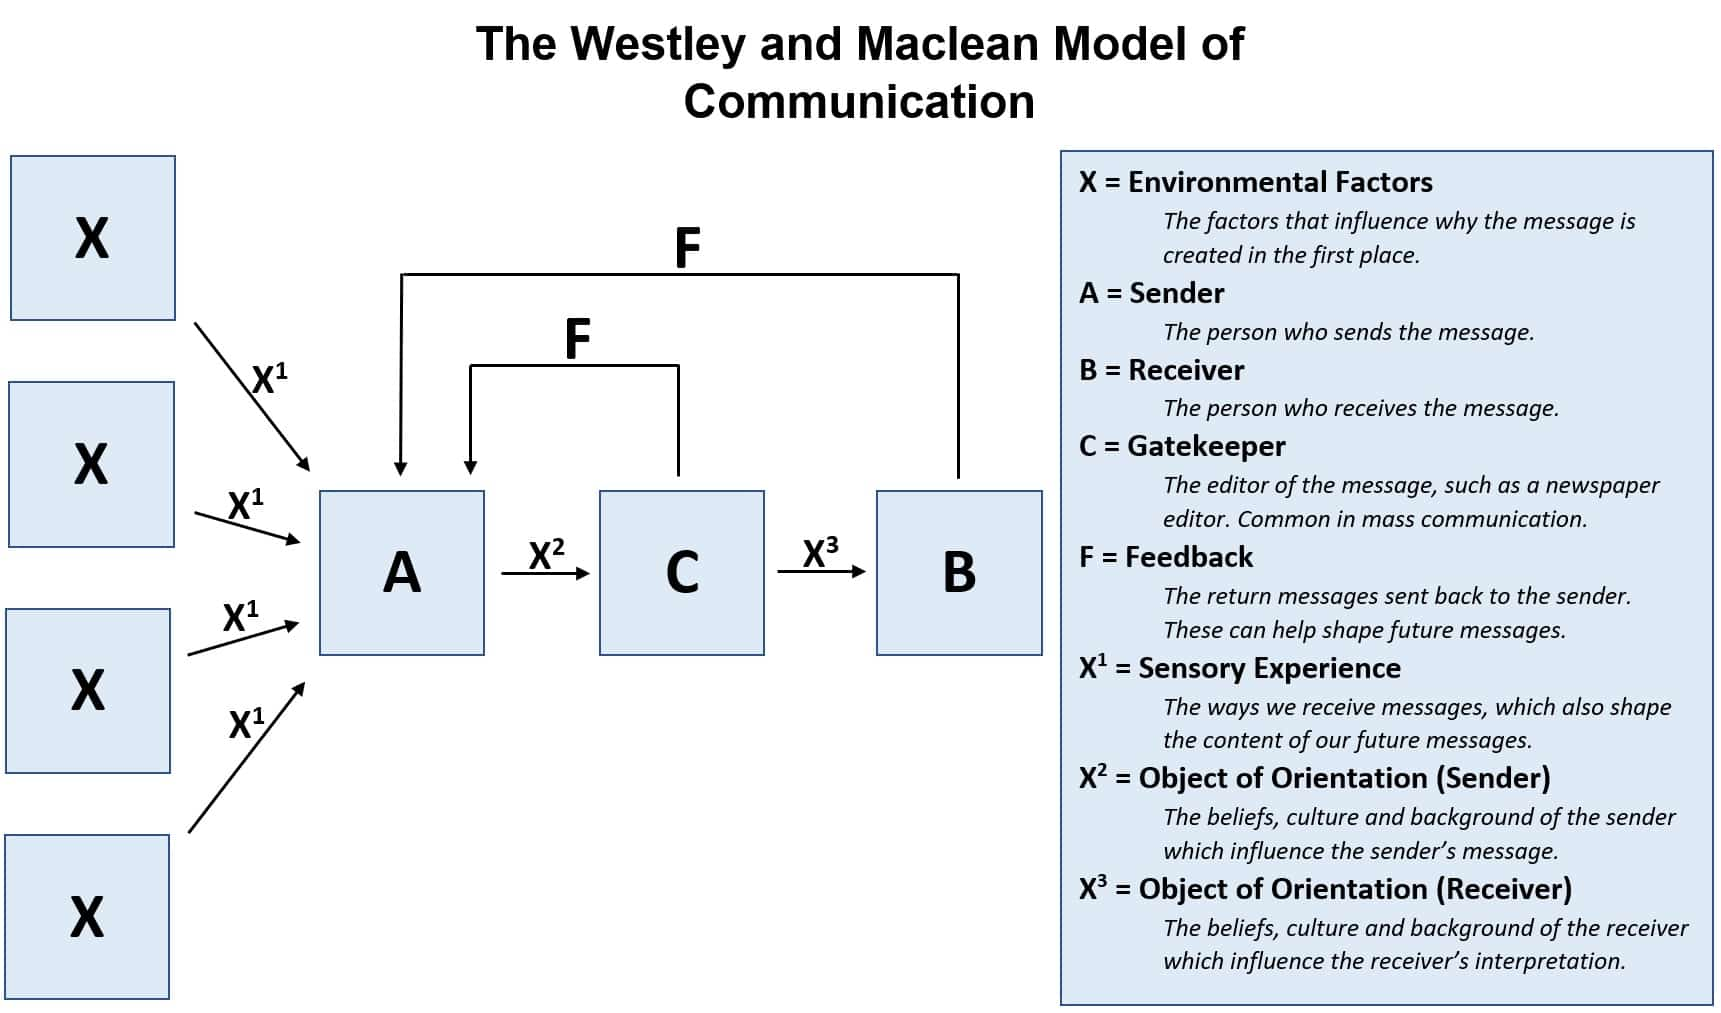 westley and maclean model of communication diagram